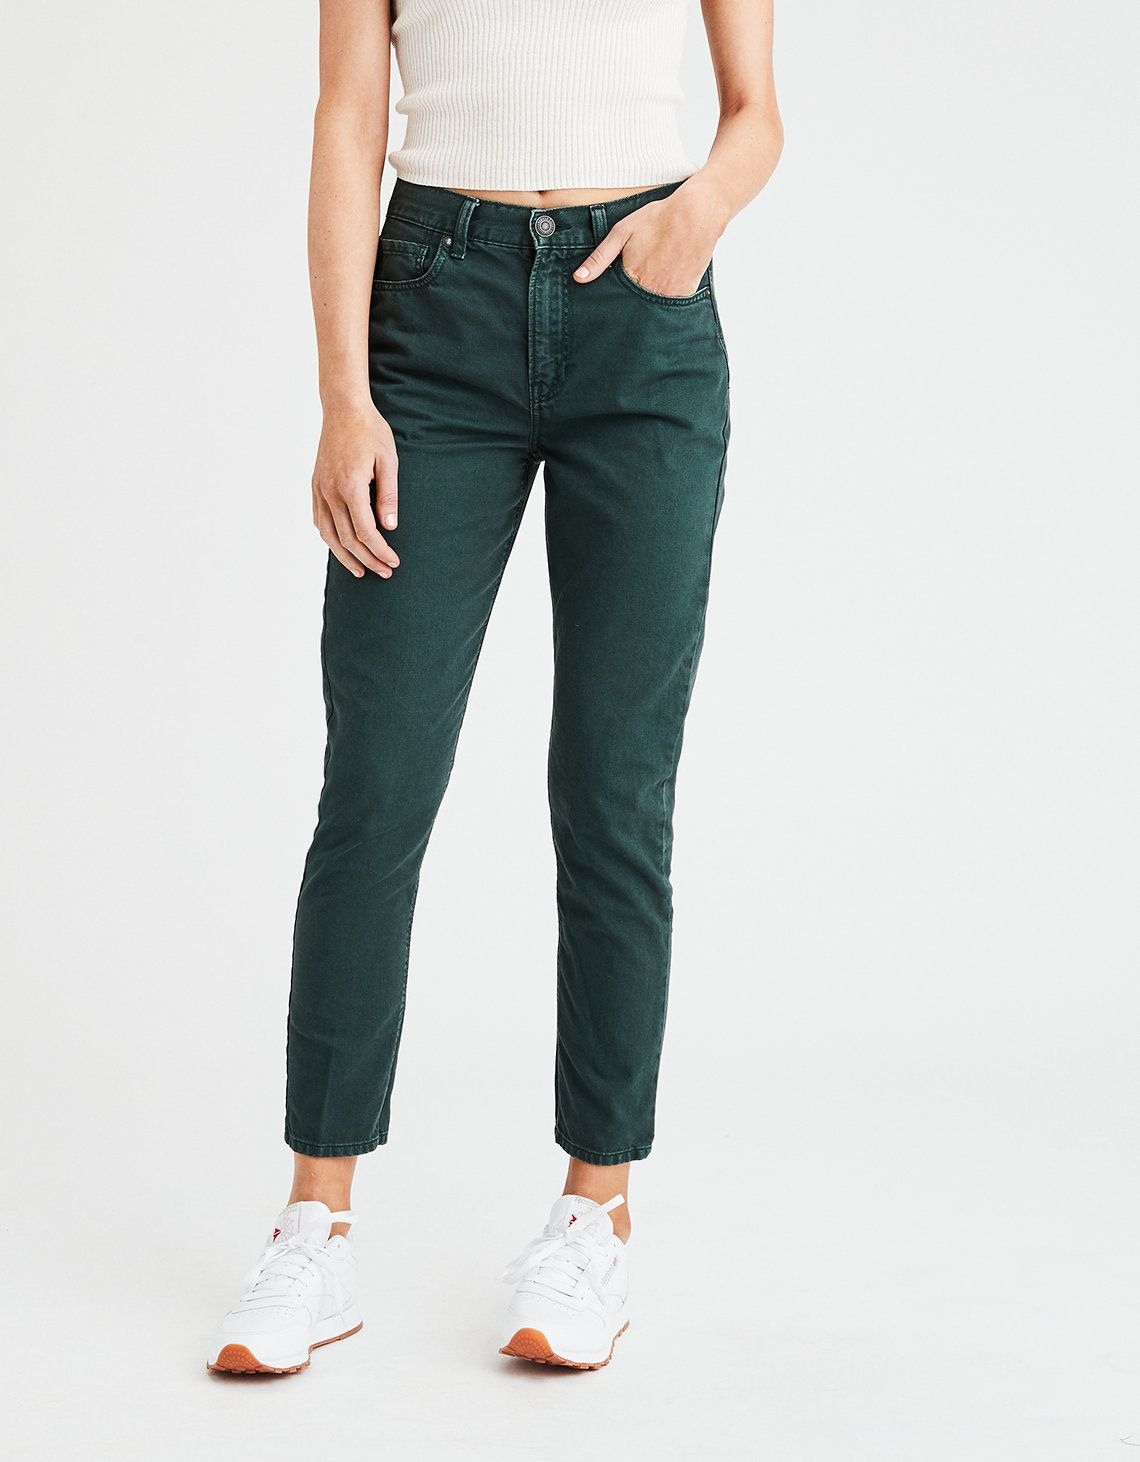 20ae6915ffbb pine green mom jeans | ae | christmas 2k18 | Mom jeans, Jeans, Mens ...